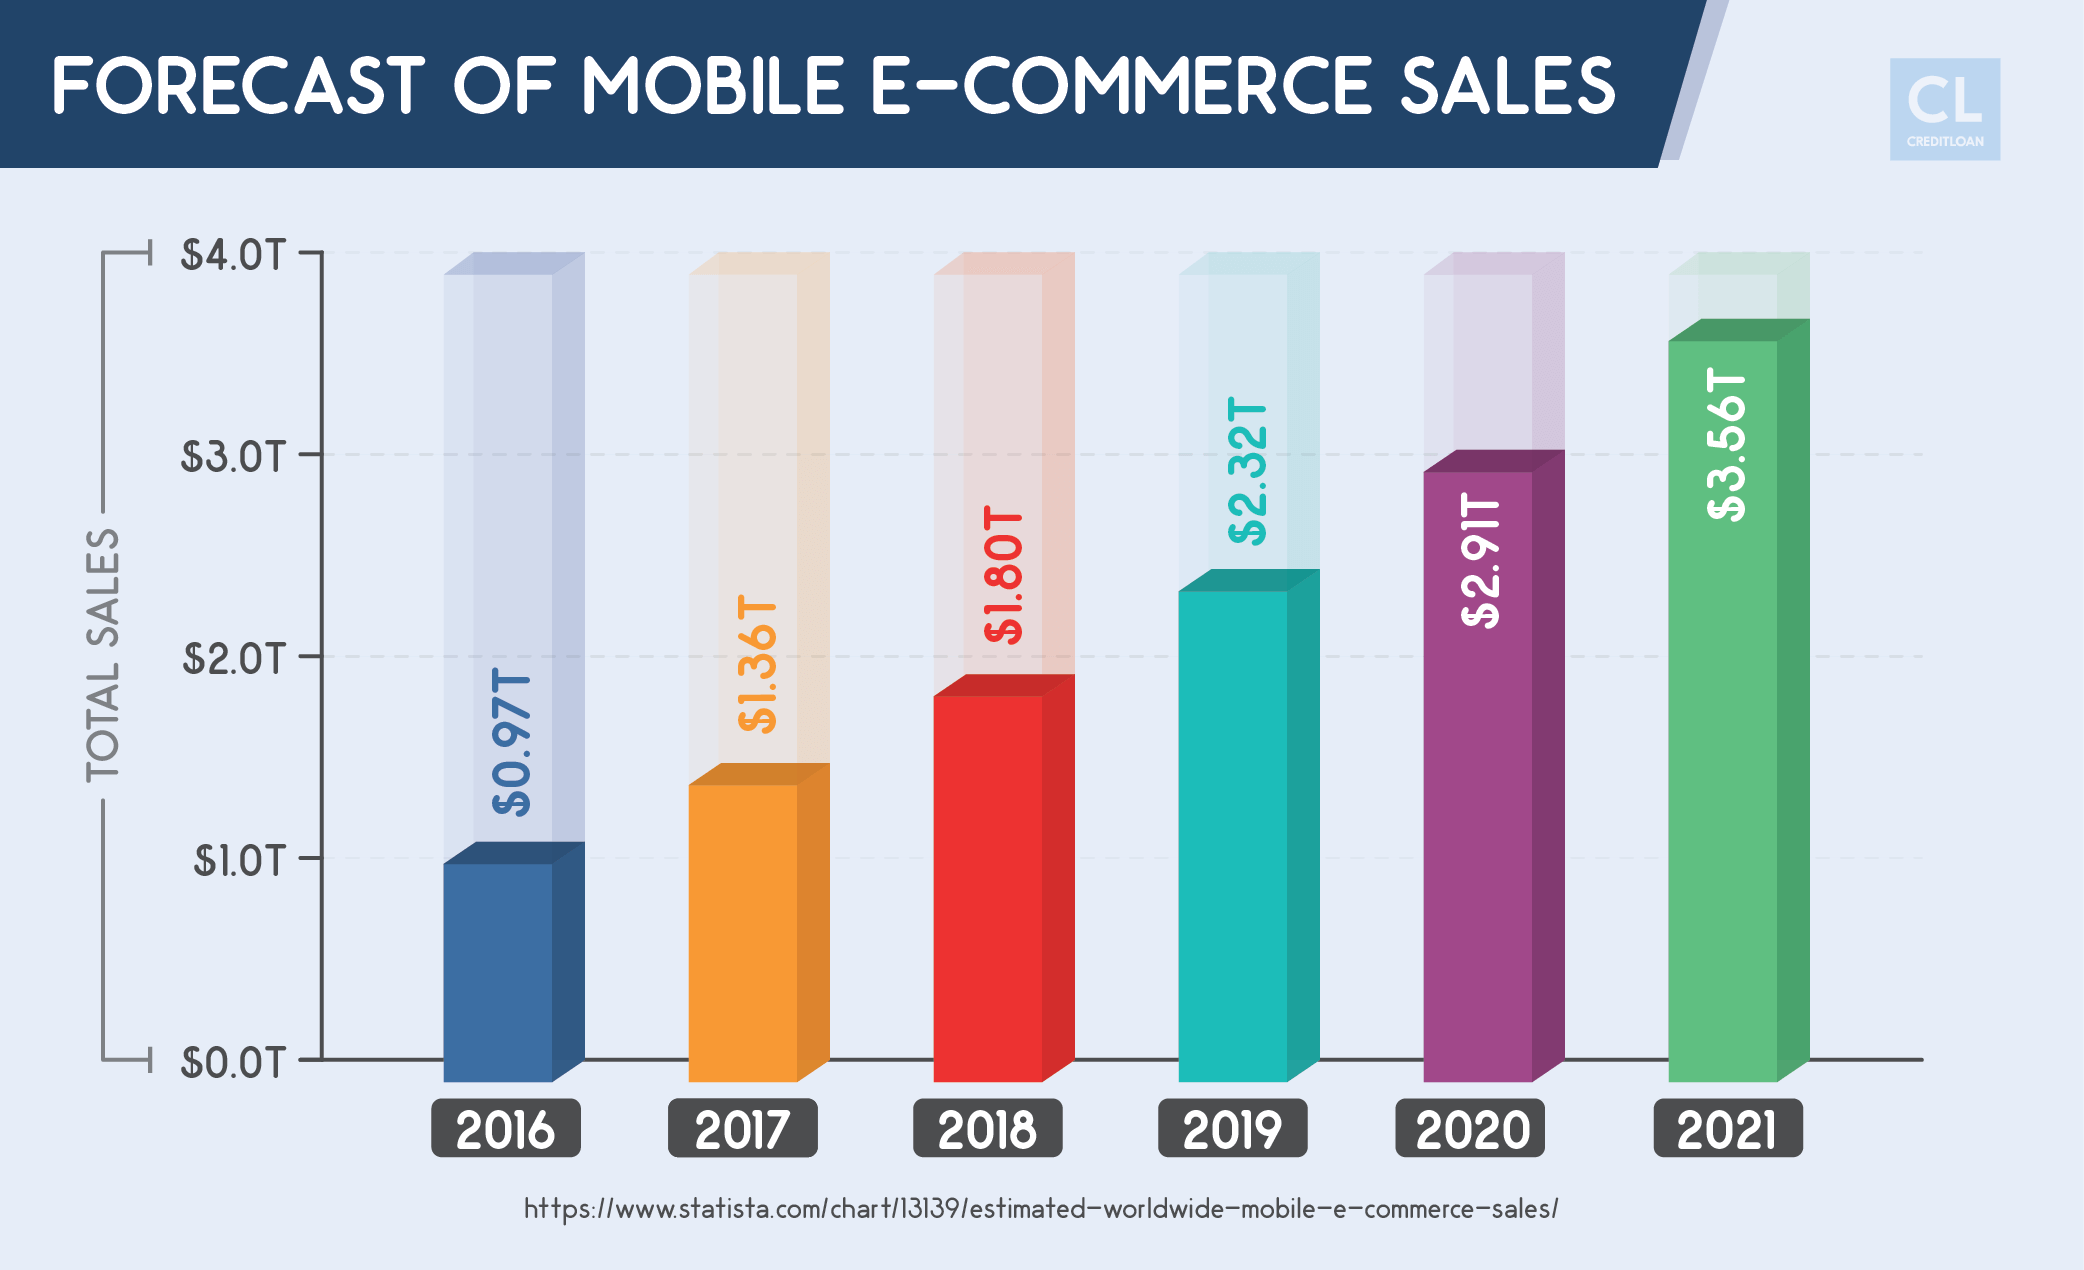 Forecast of Mobile E-commerce Sales from 2016-2021